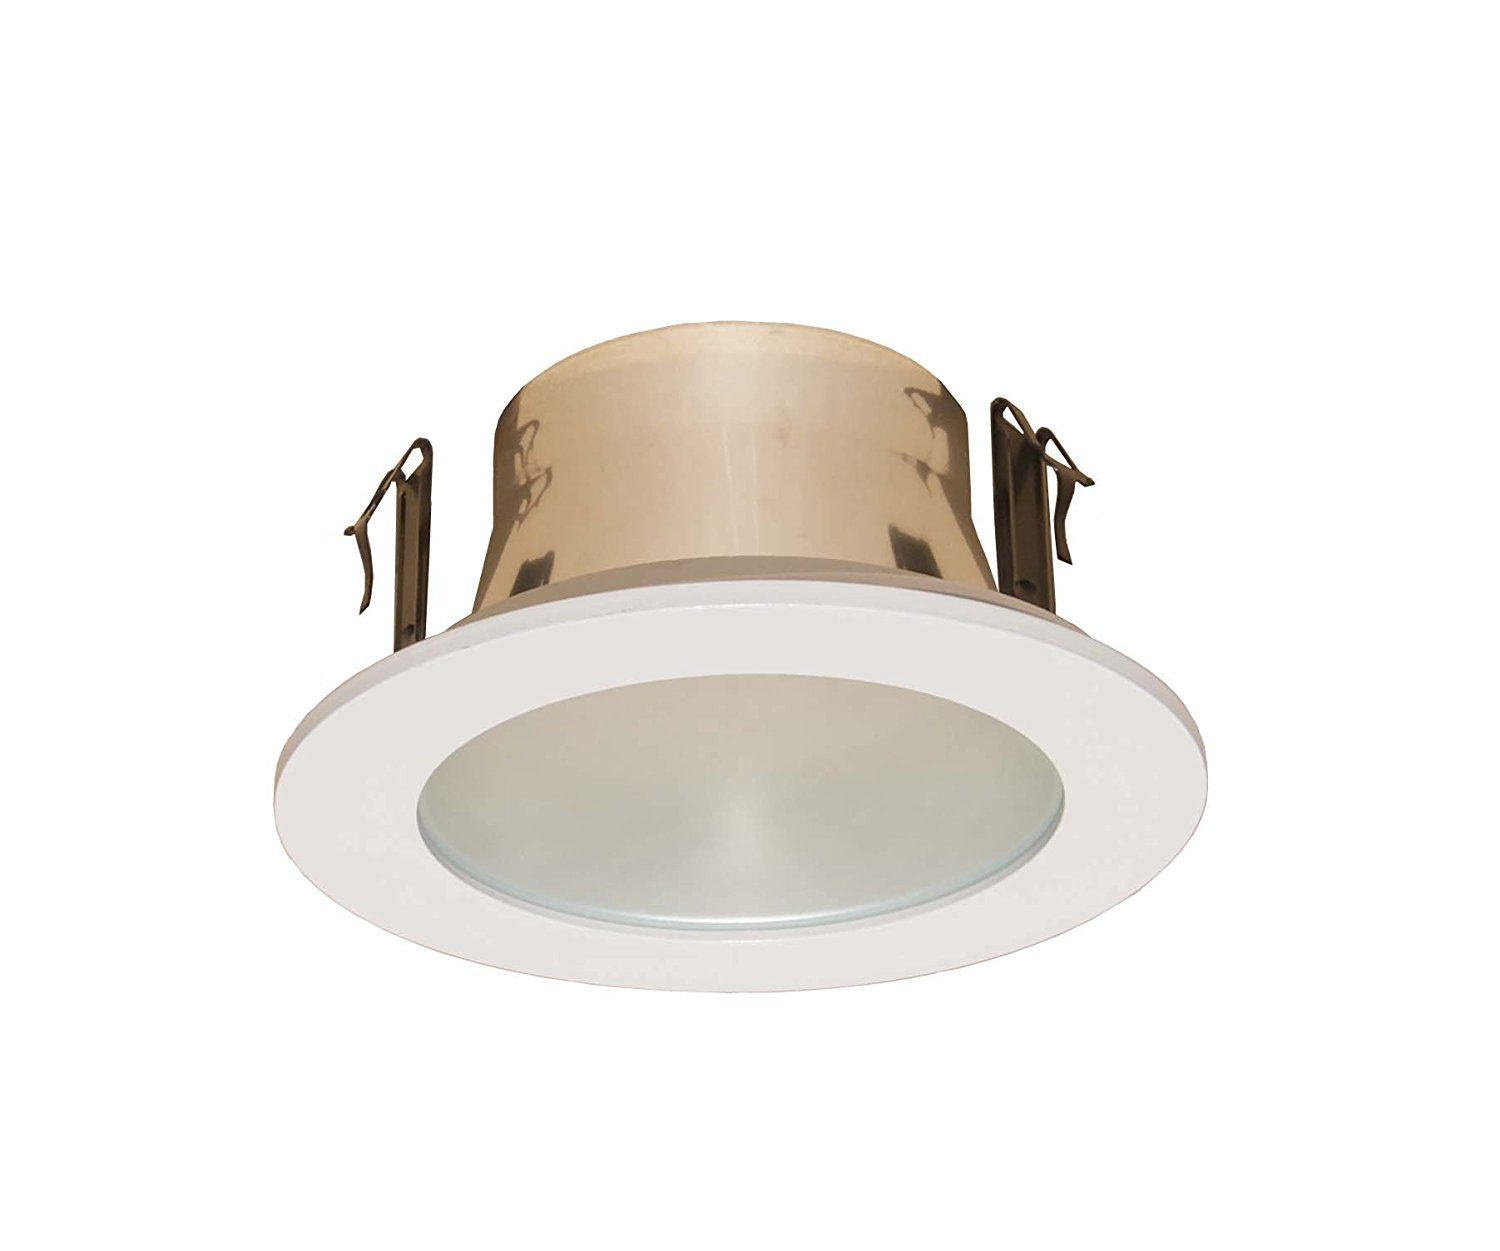 Best rated in recessed lighting trims helpful customer reviews 4 inches frosted lens shower trim for line voltage recessed lightlighting white fit arubaitofo Images